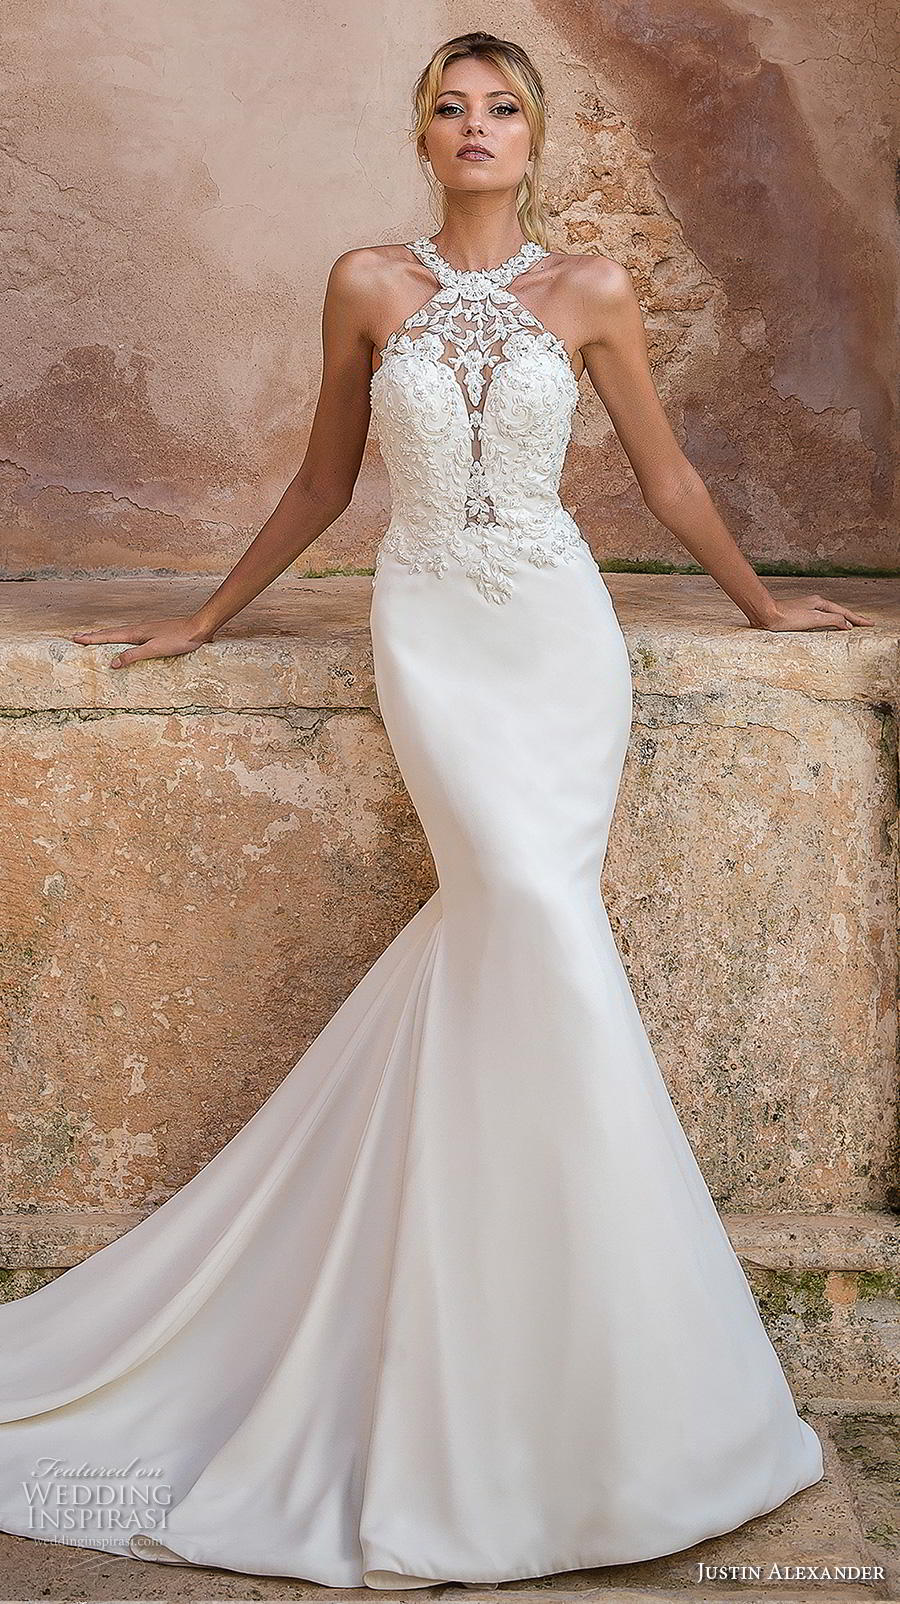 justin alexander spring 2019 bridal halter neck heavily embellished bodice elegant fit and flare trumpet wedding dress rasor back medium train (10) mv